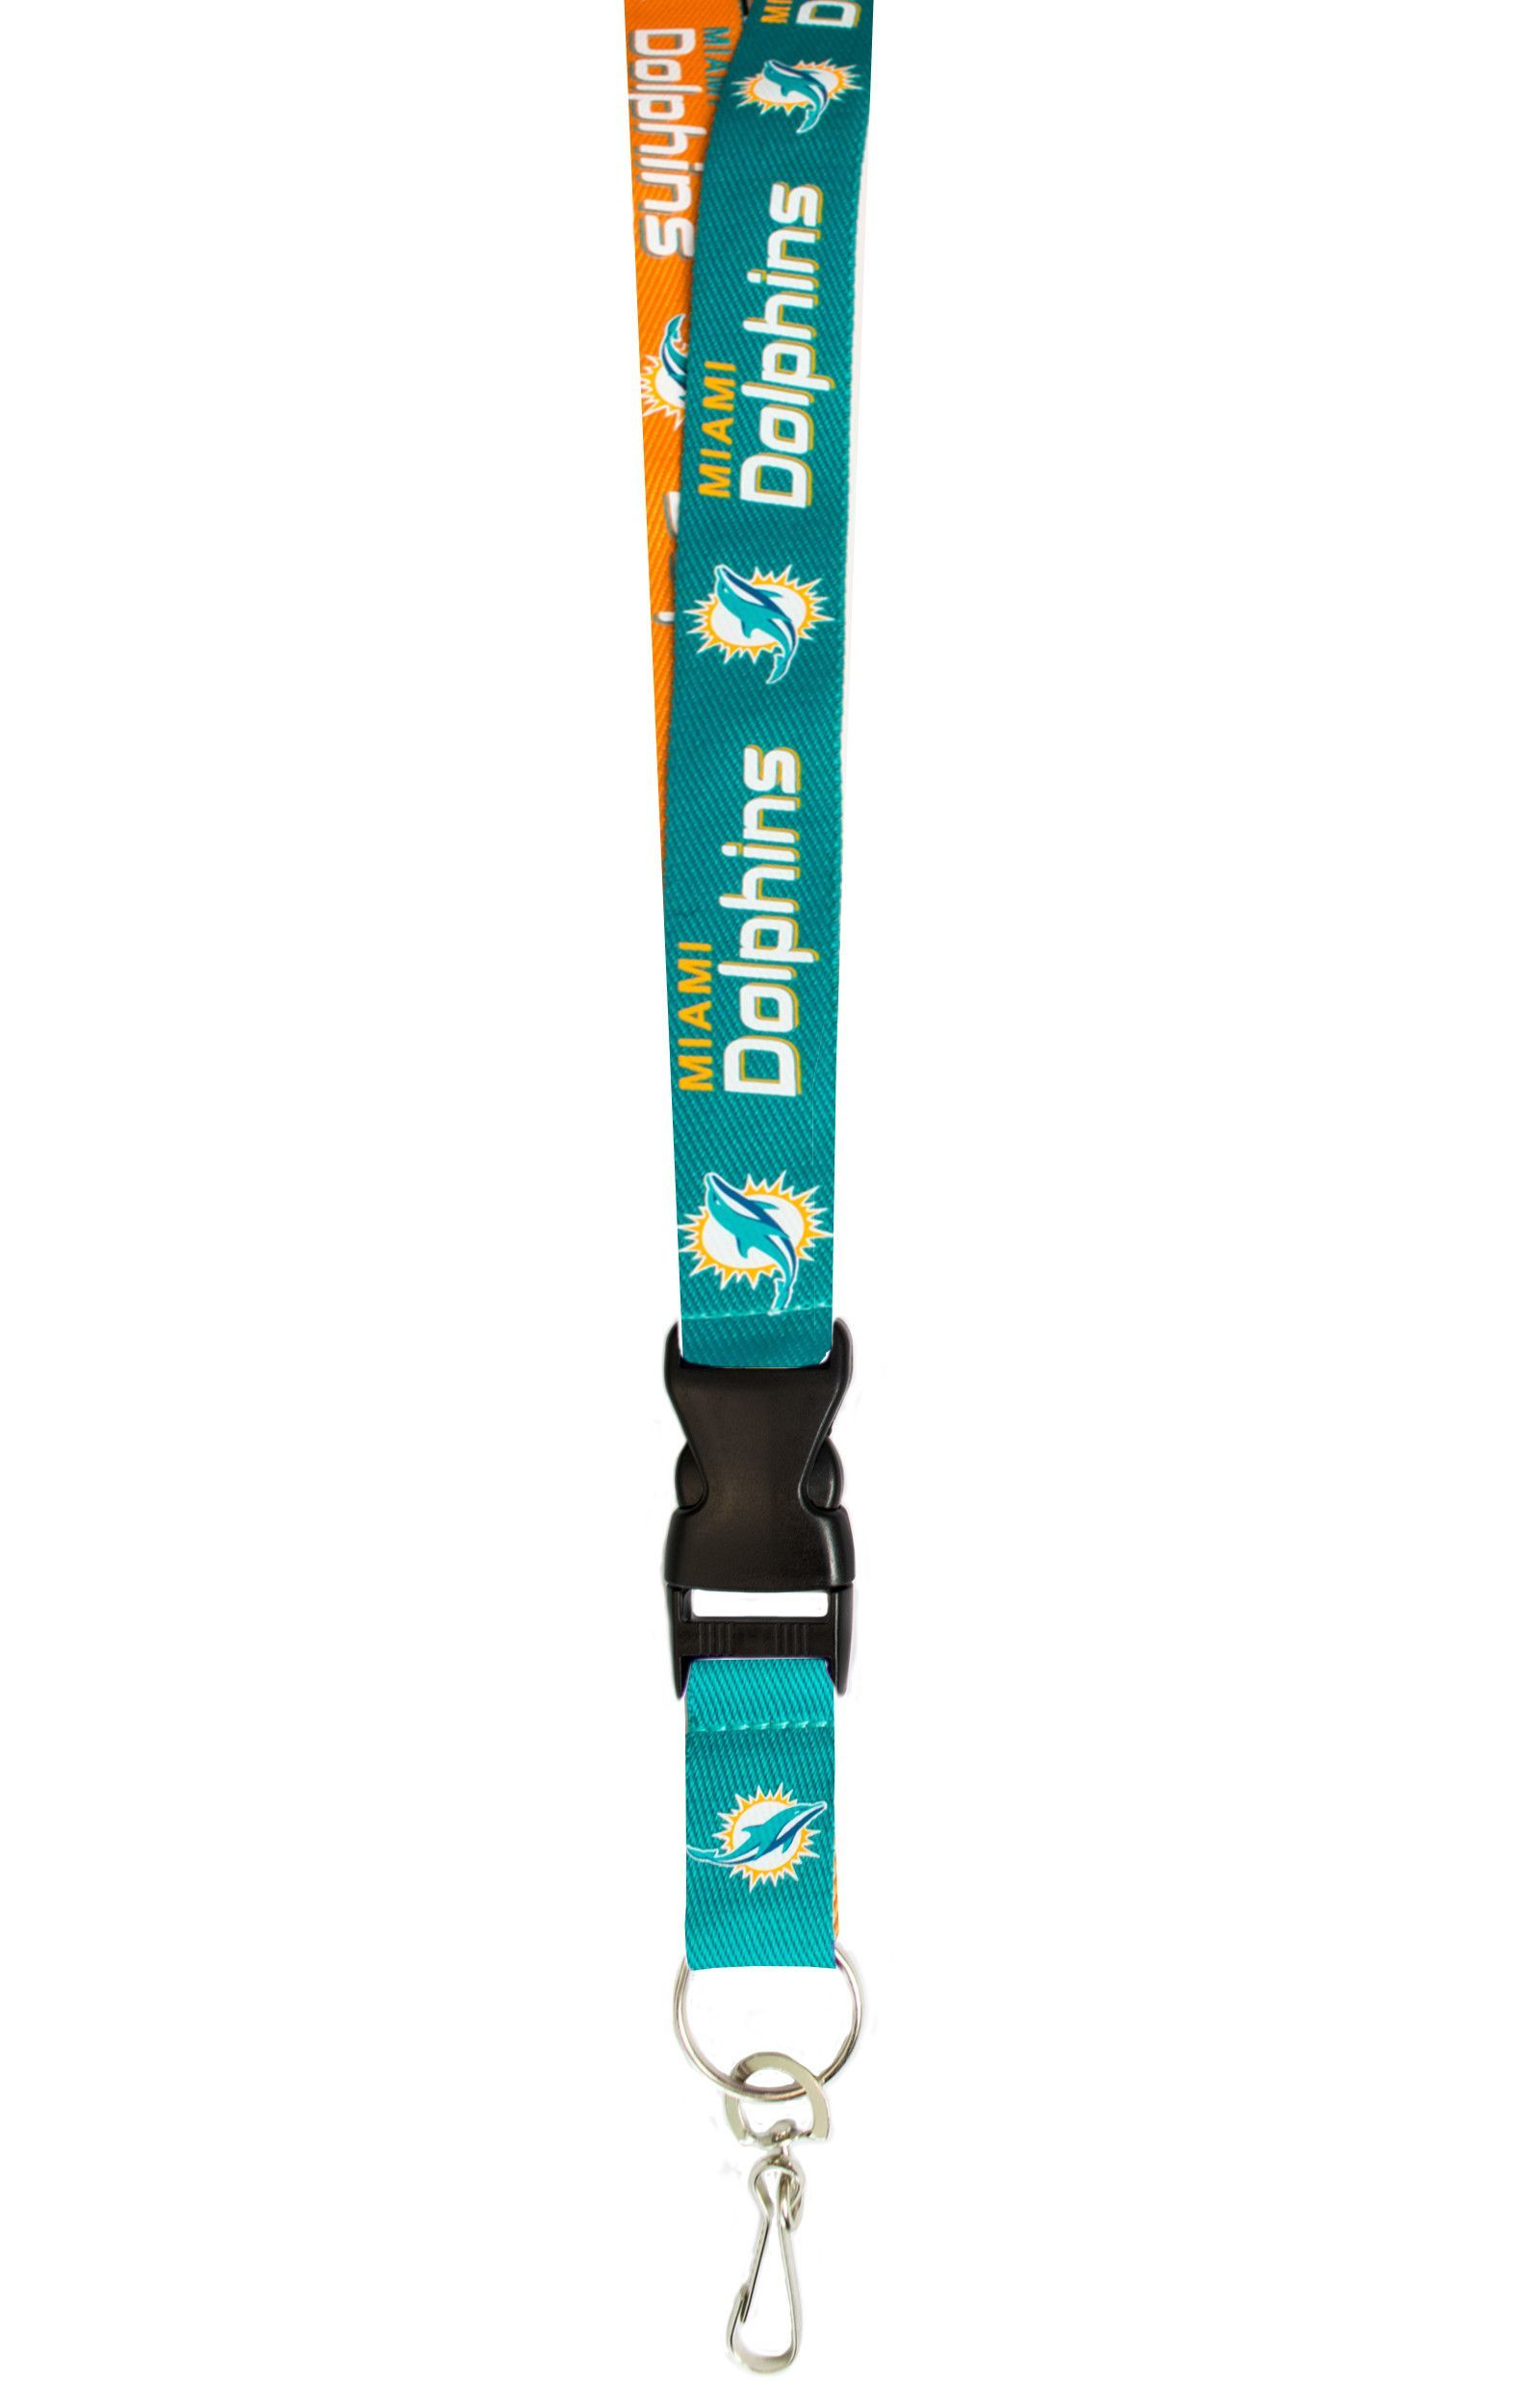 bb615de6 Miami Dolphins Lanyard - Two-Tone~backorder | Products | Miami ...